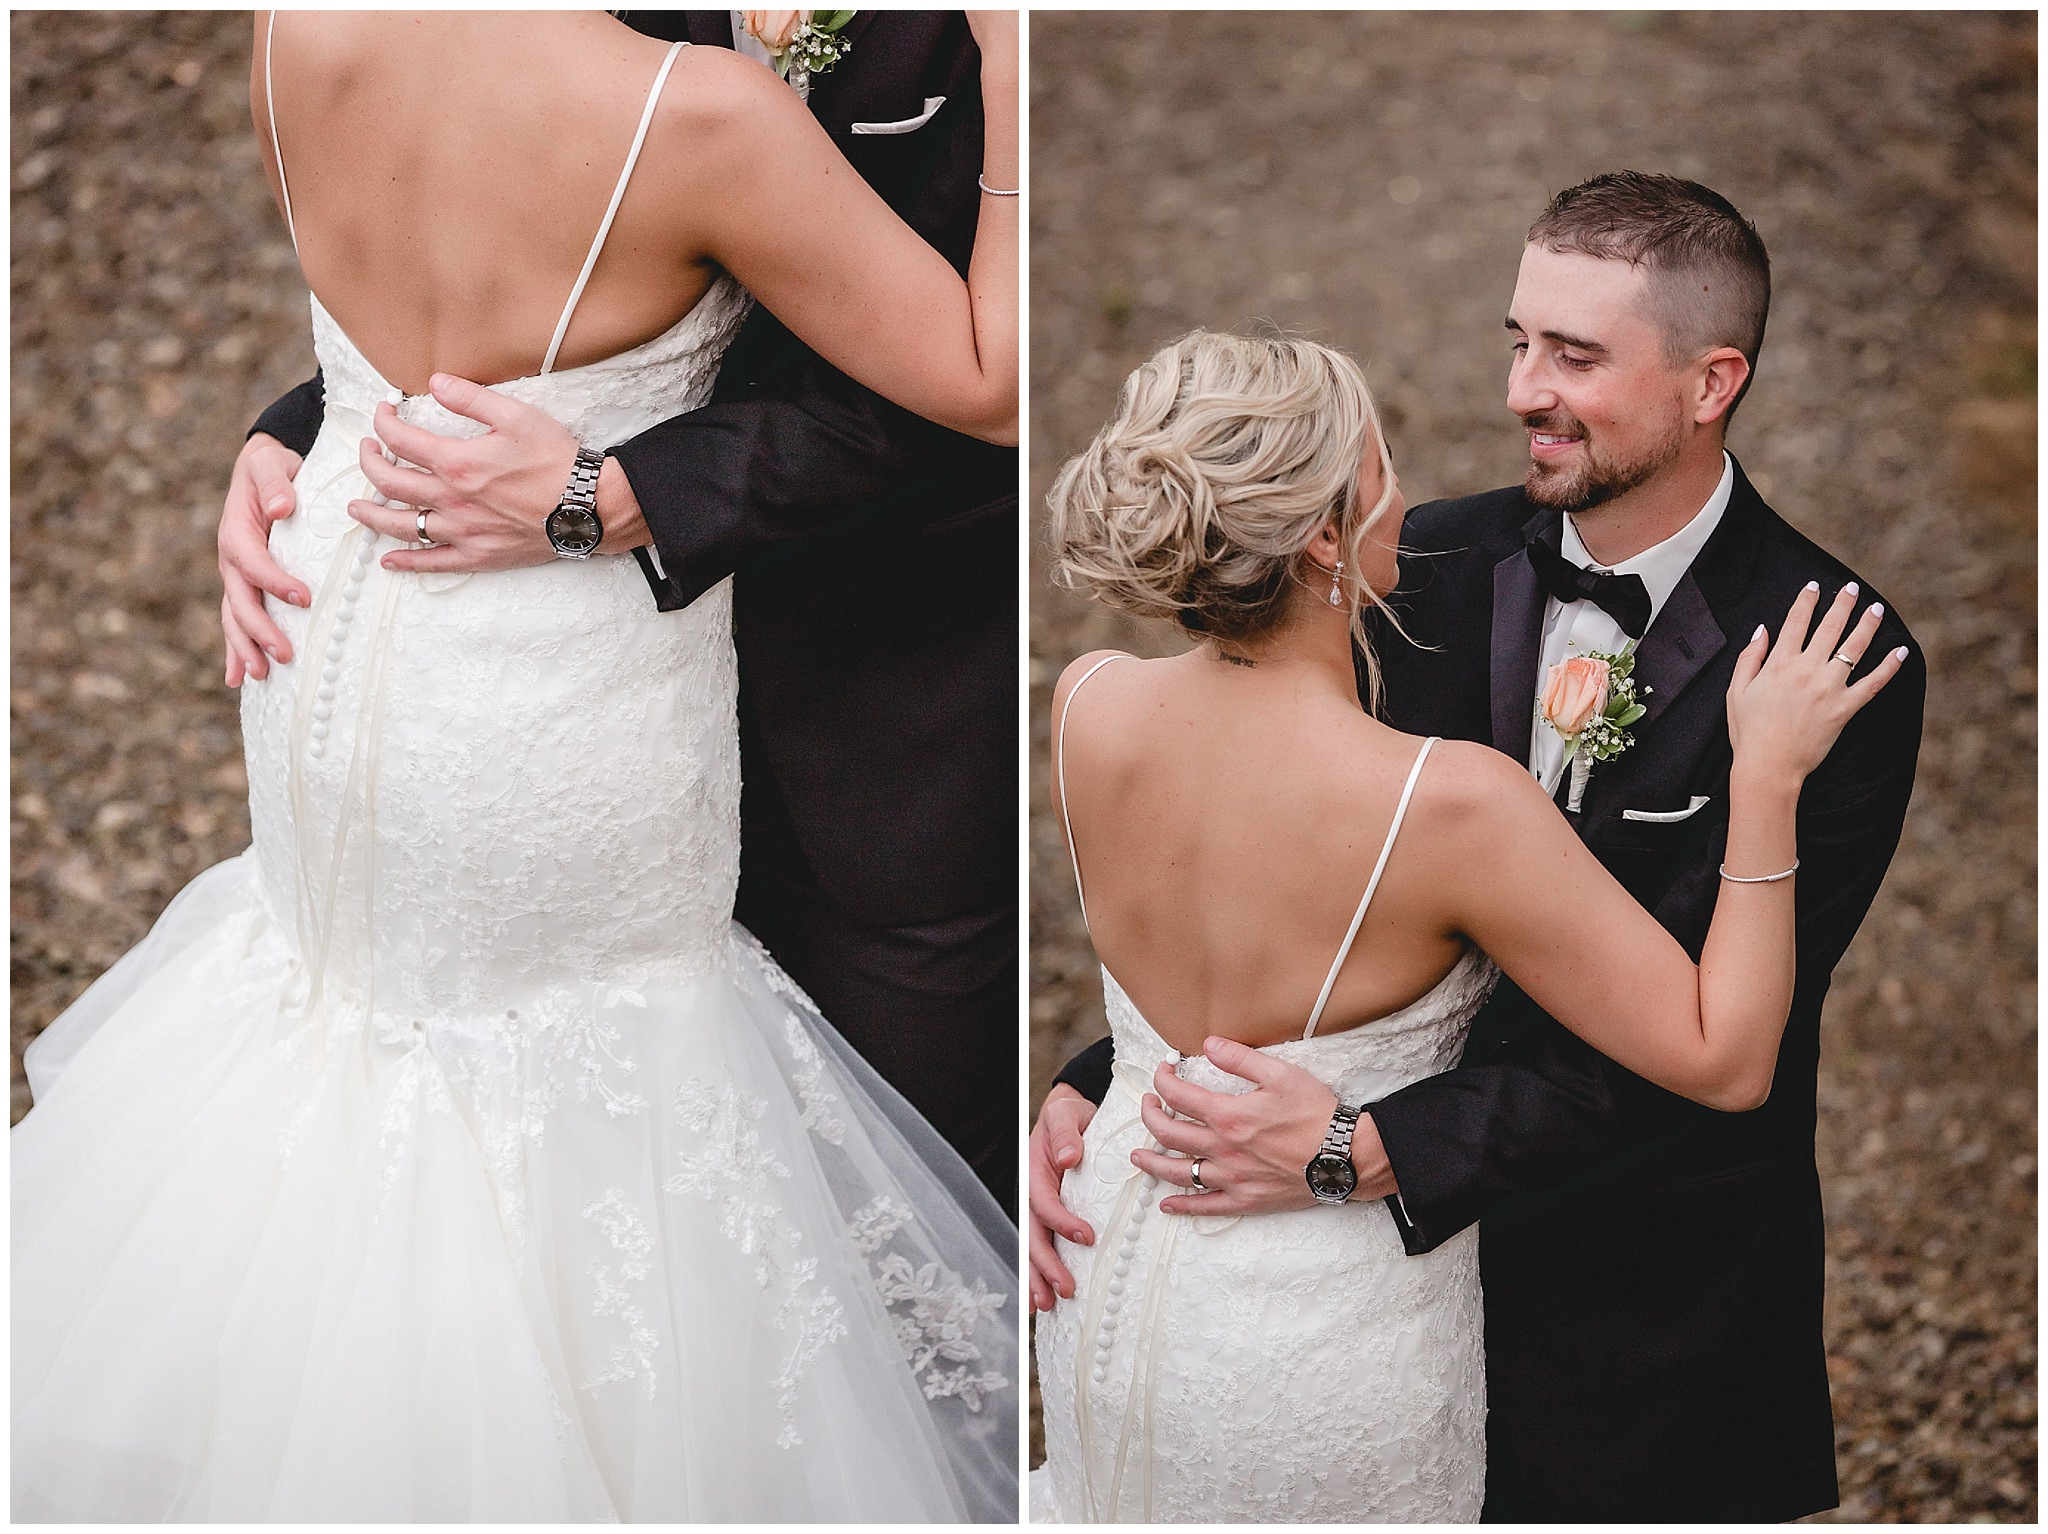 Groom holds his bride at their September wedding at the Gathering Place at Darlington Lake